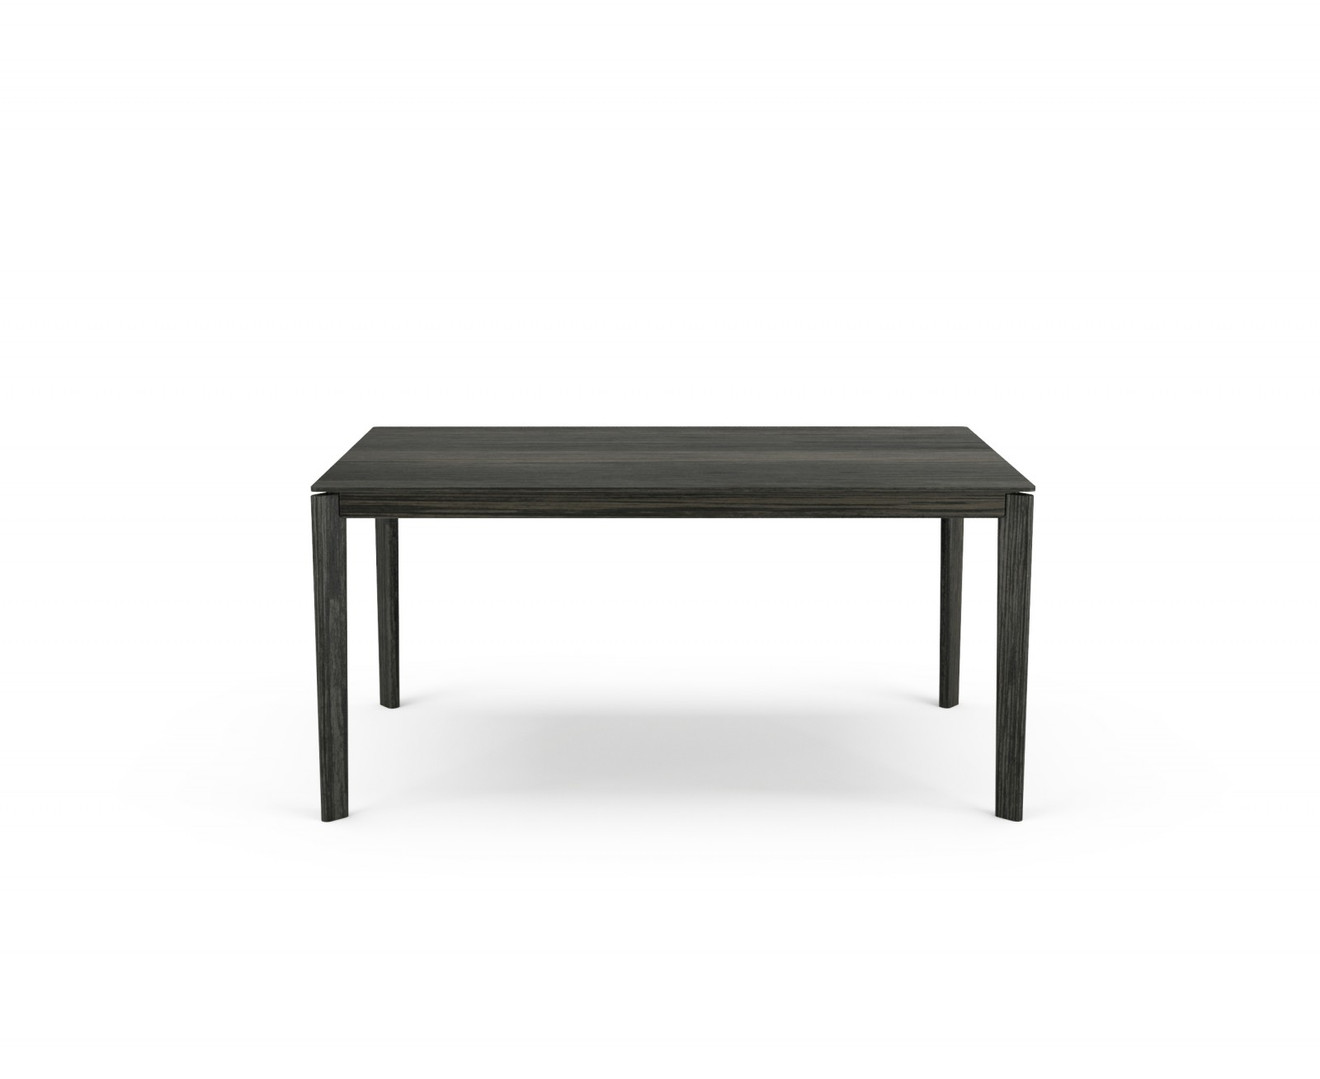 WOLFGANG 62'' TABLE